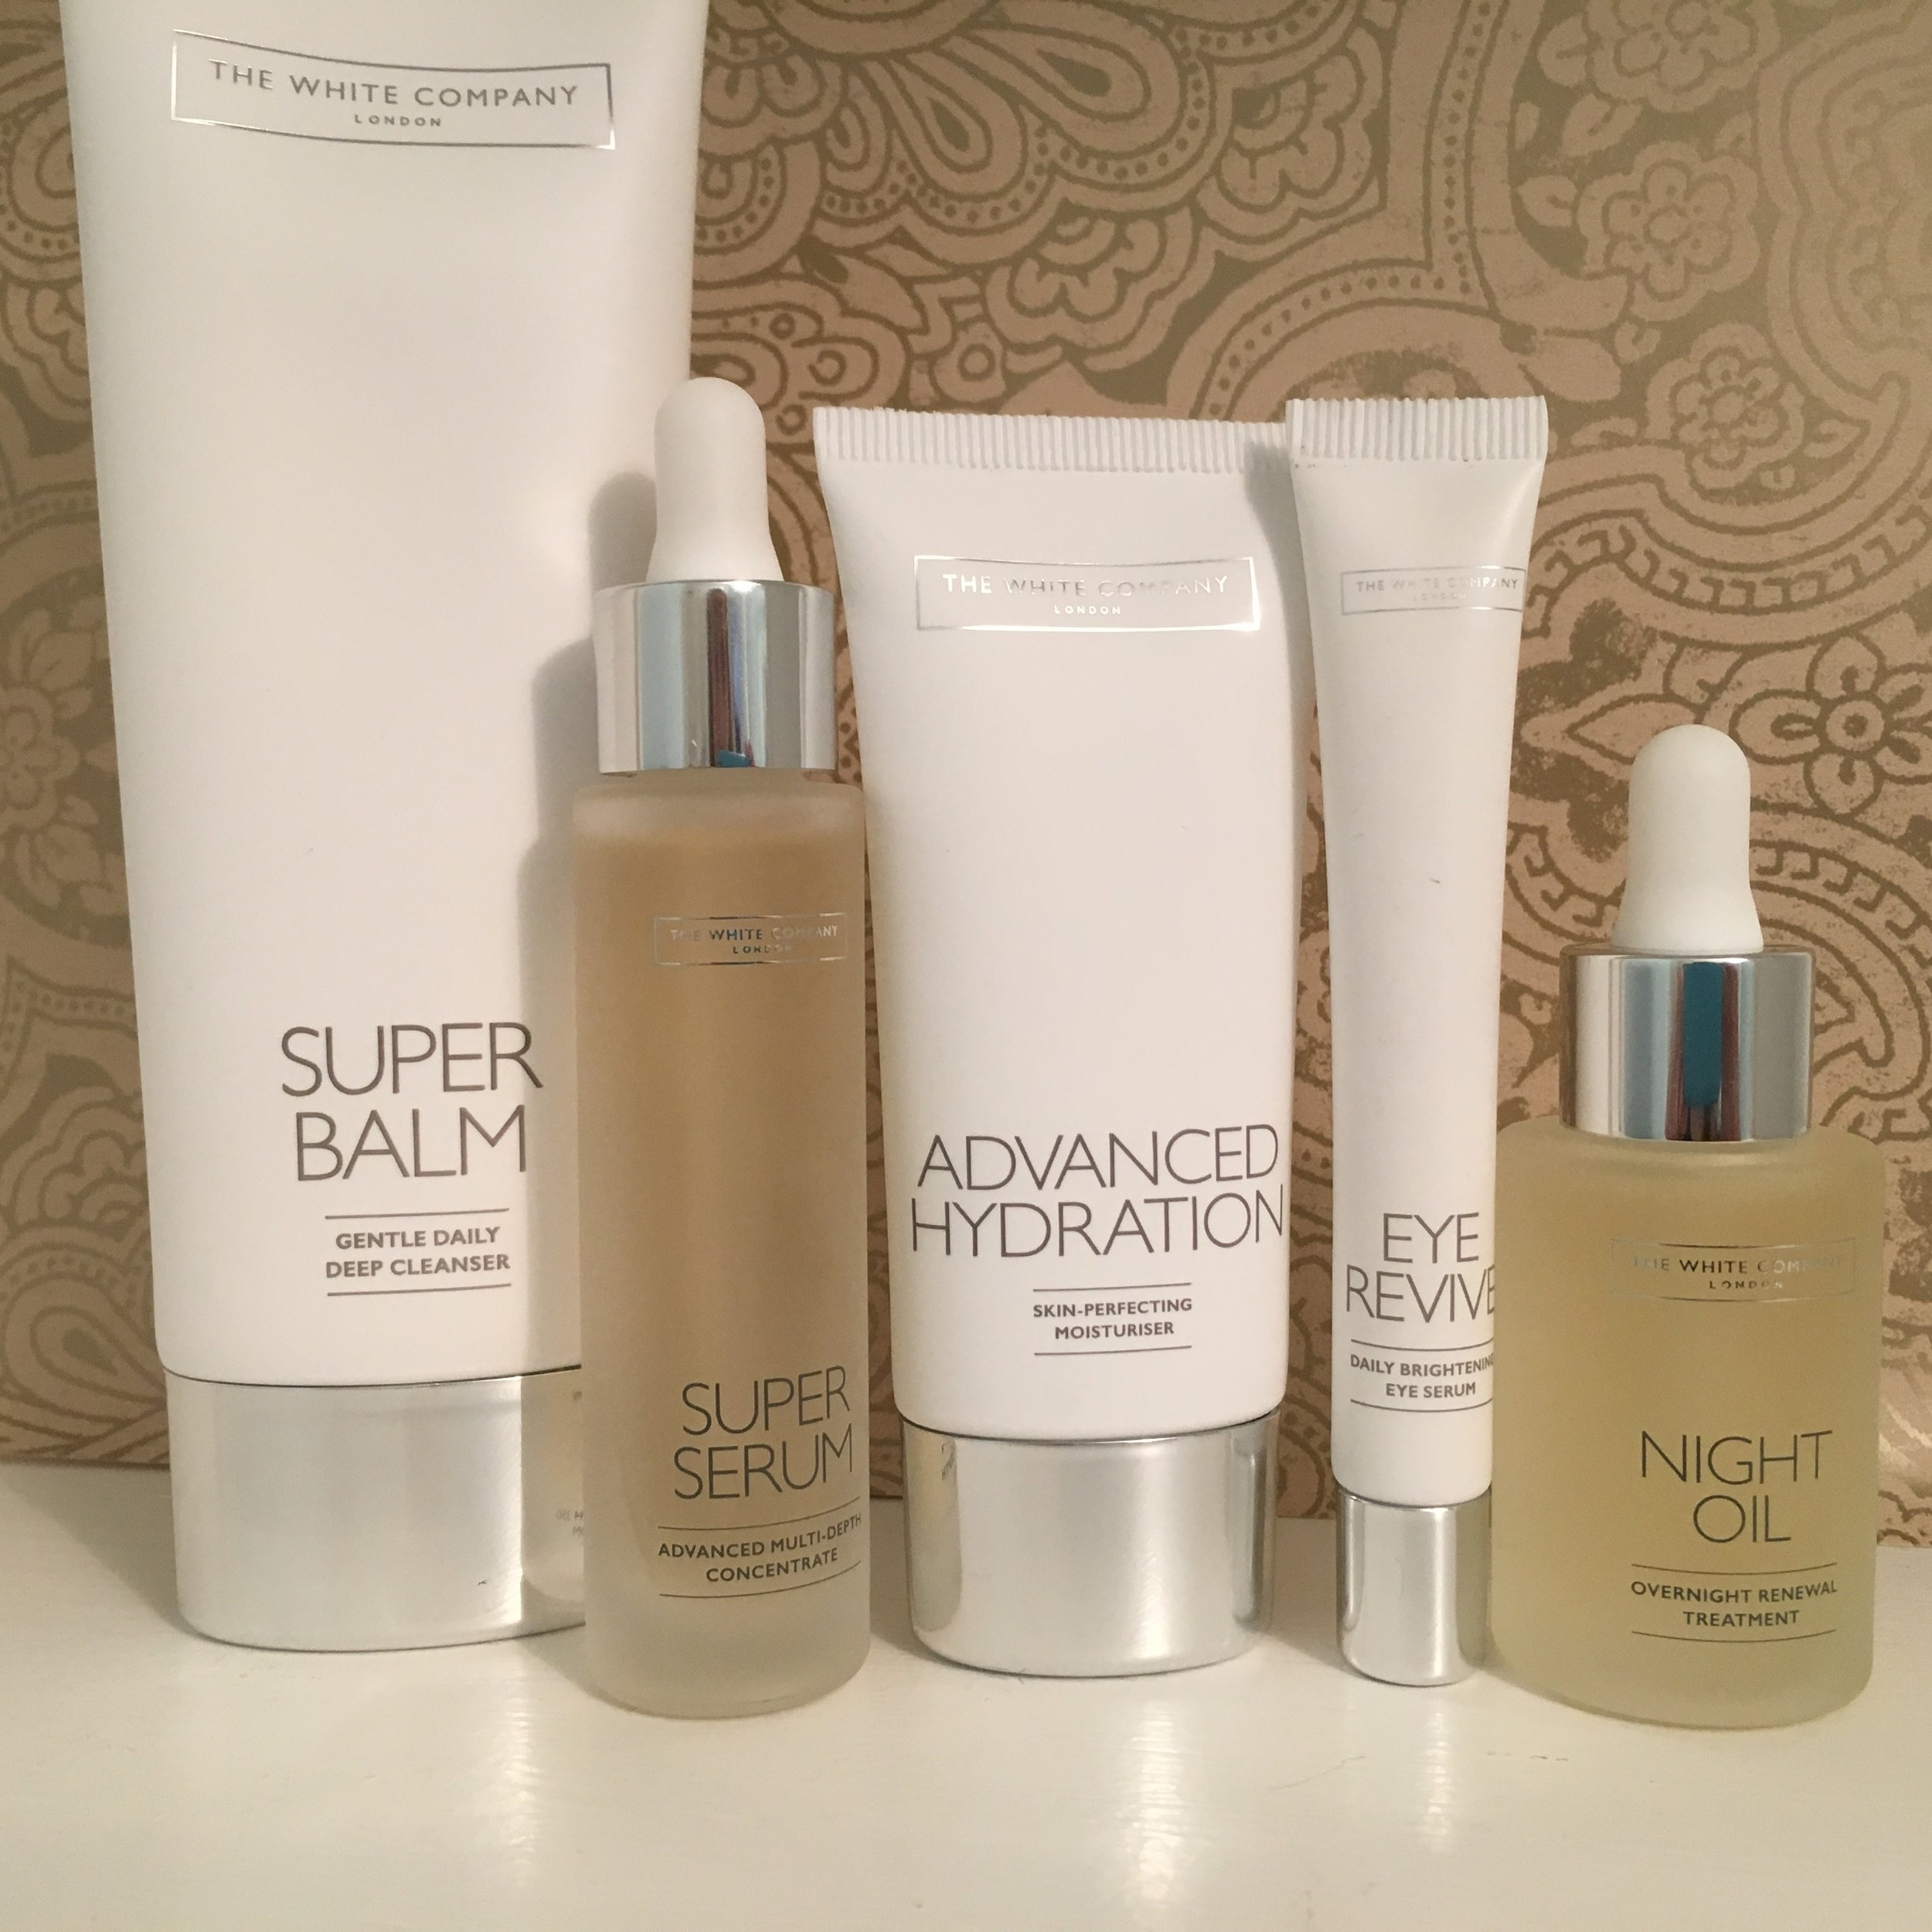 The White Company's new skincare line-up: fast-track products for great skin